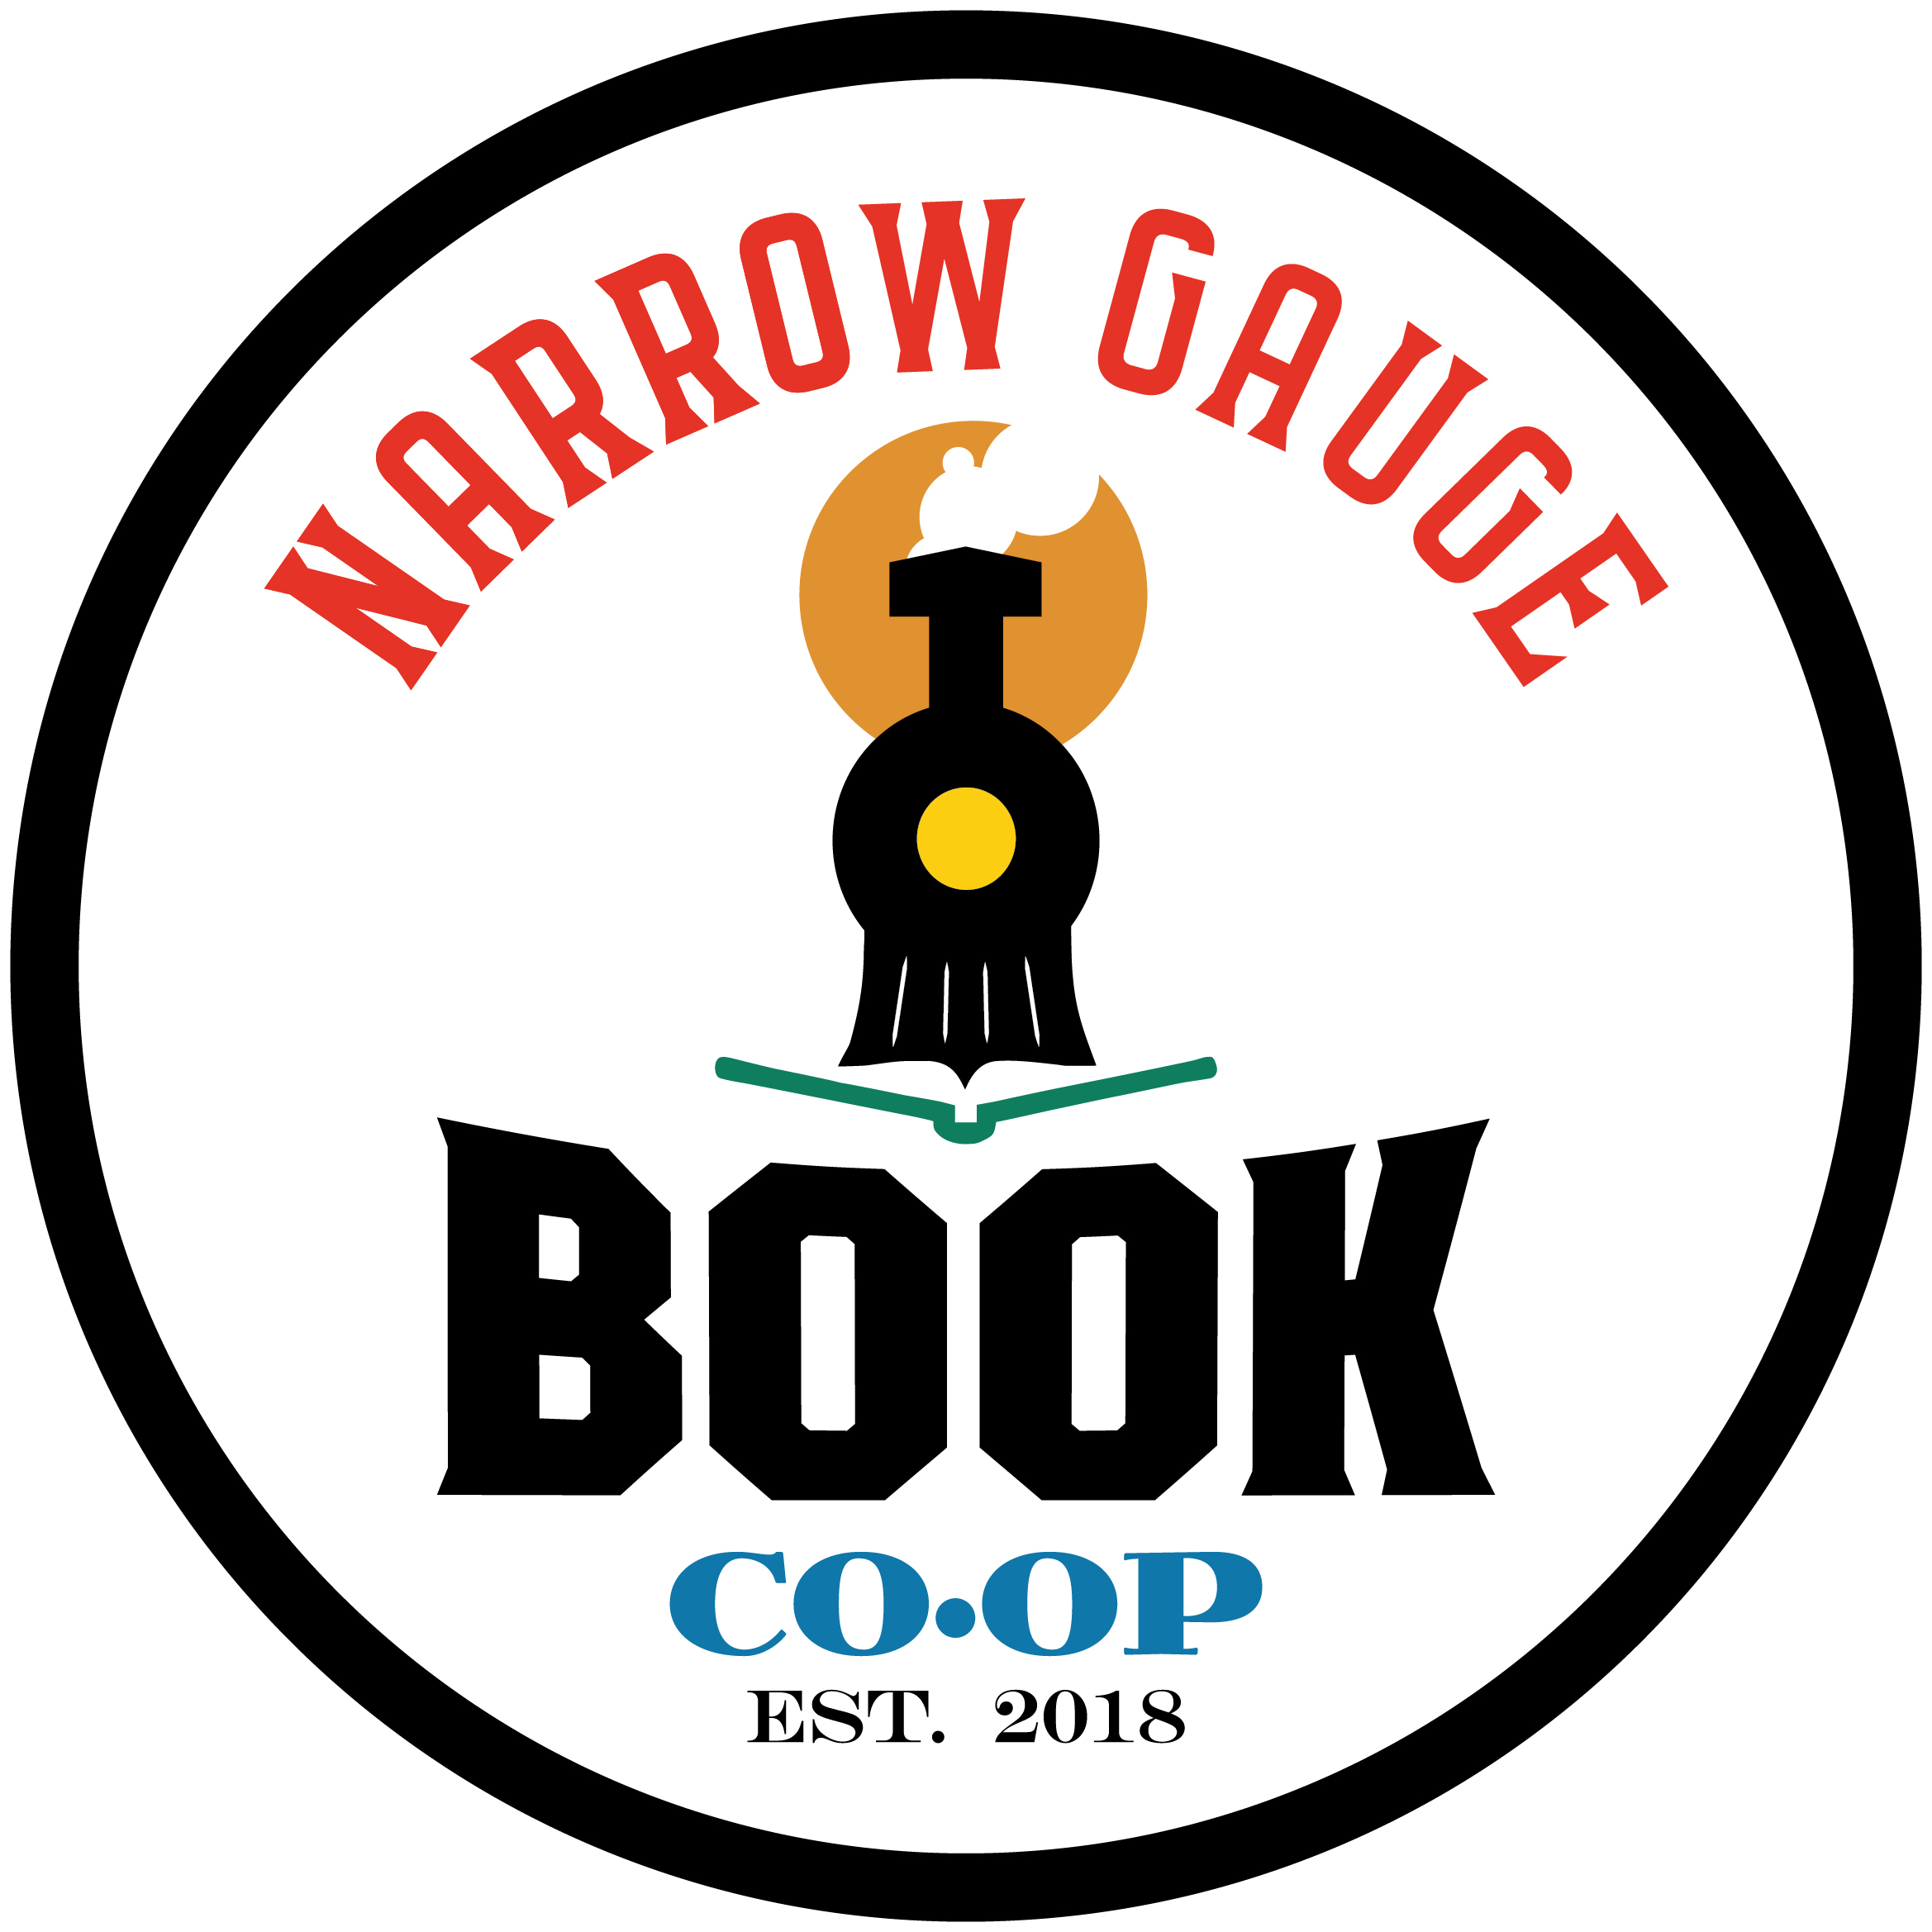 Narrow Gauge Book Co-op